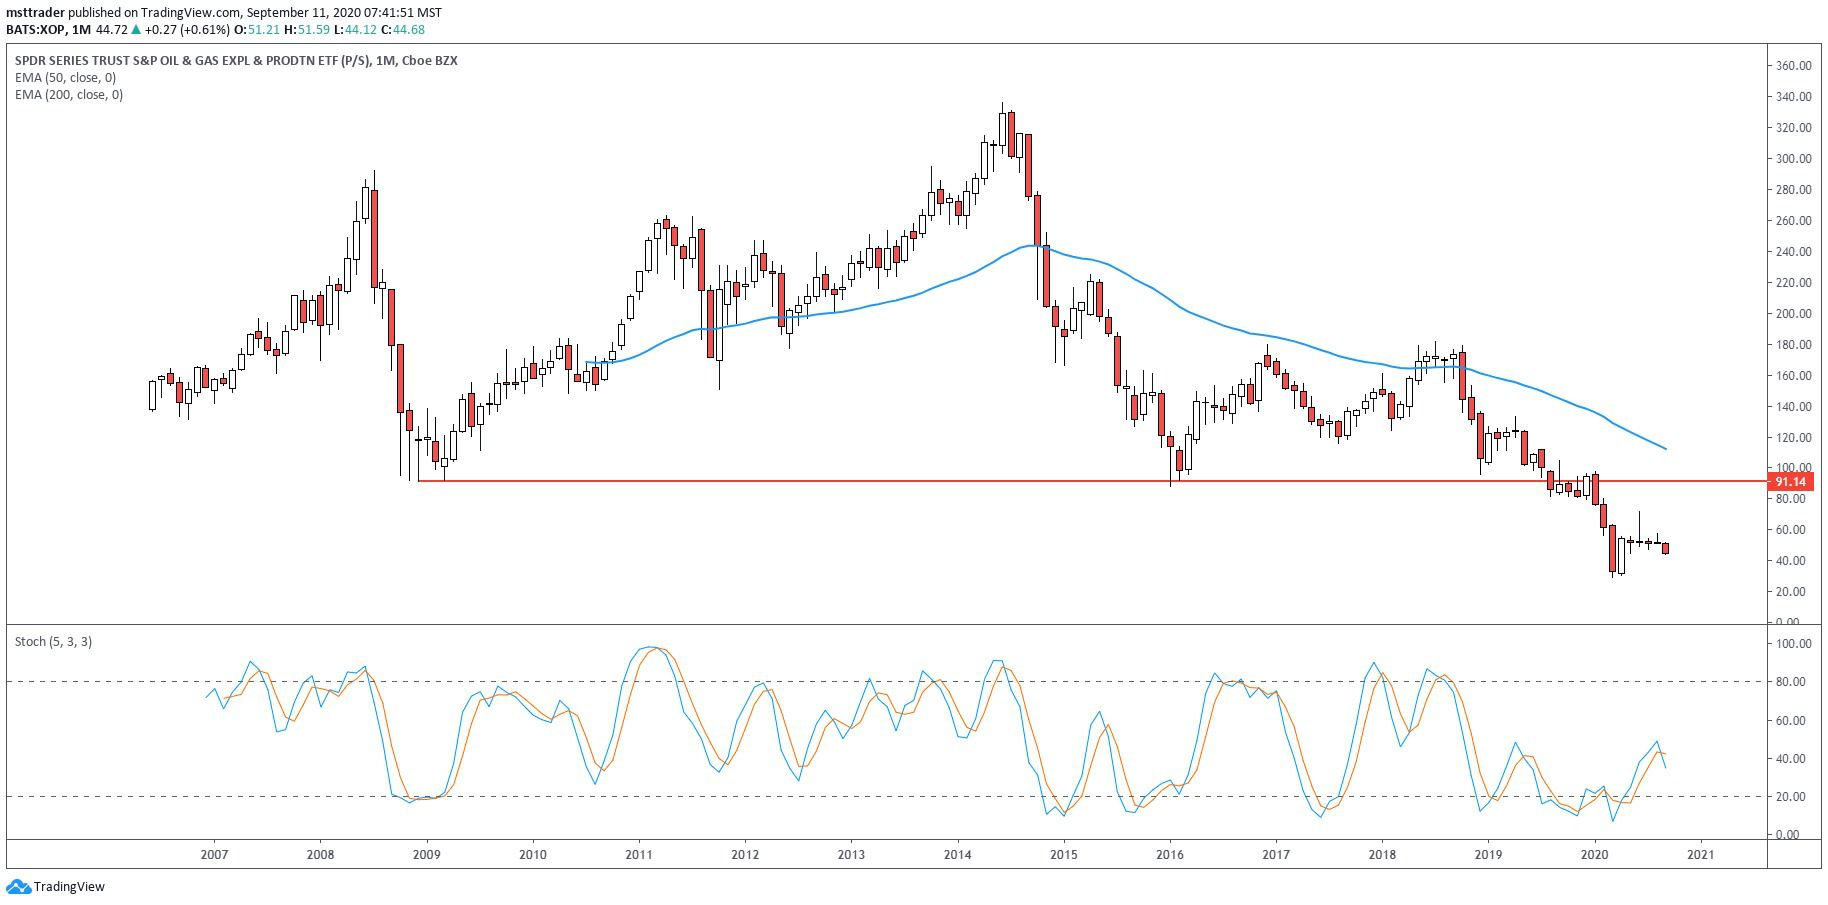 Chart showing the share price performance of the SPDR S&P Oil & Gas Exploration & Production ETF (XOP)